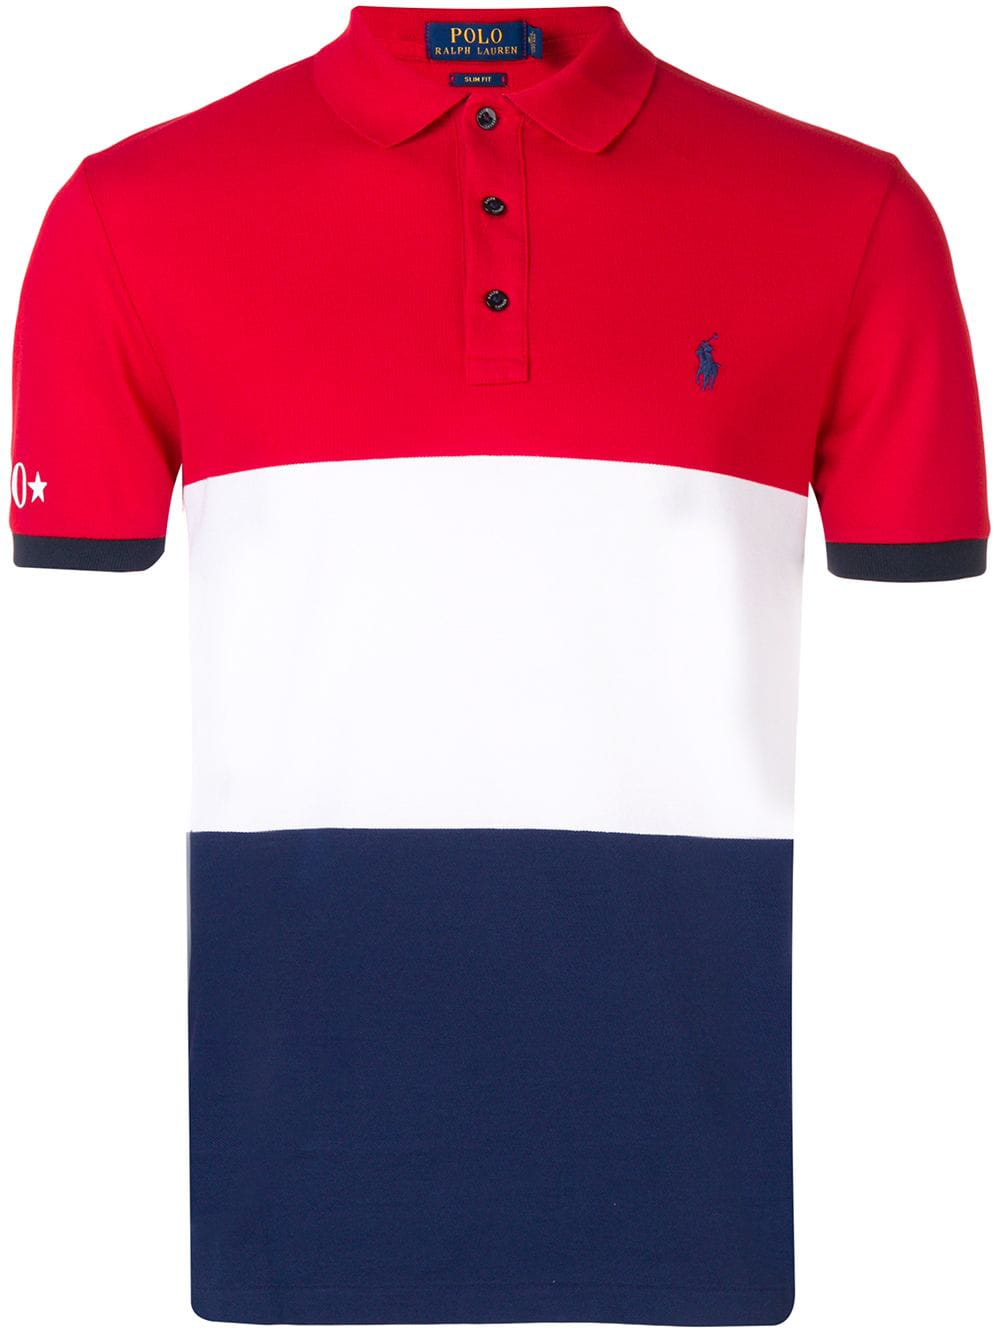 cheaper 9f755 68ec1 Polo Ralph Lauren Colour-Block Polo Shirt - Red